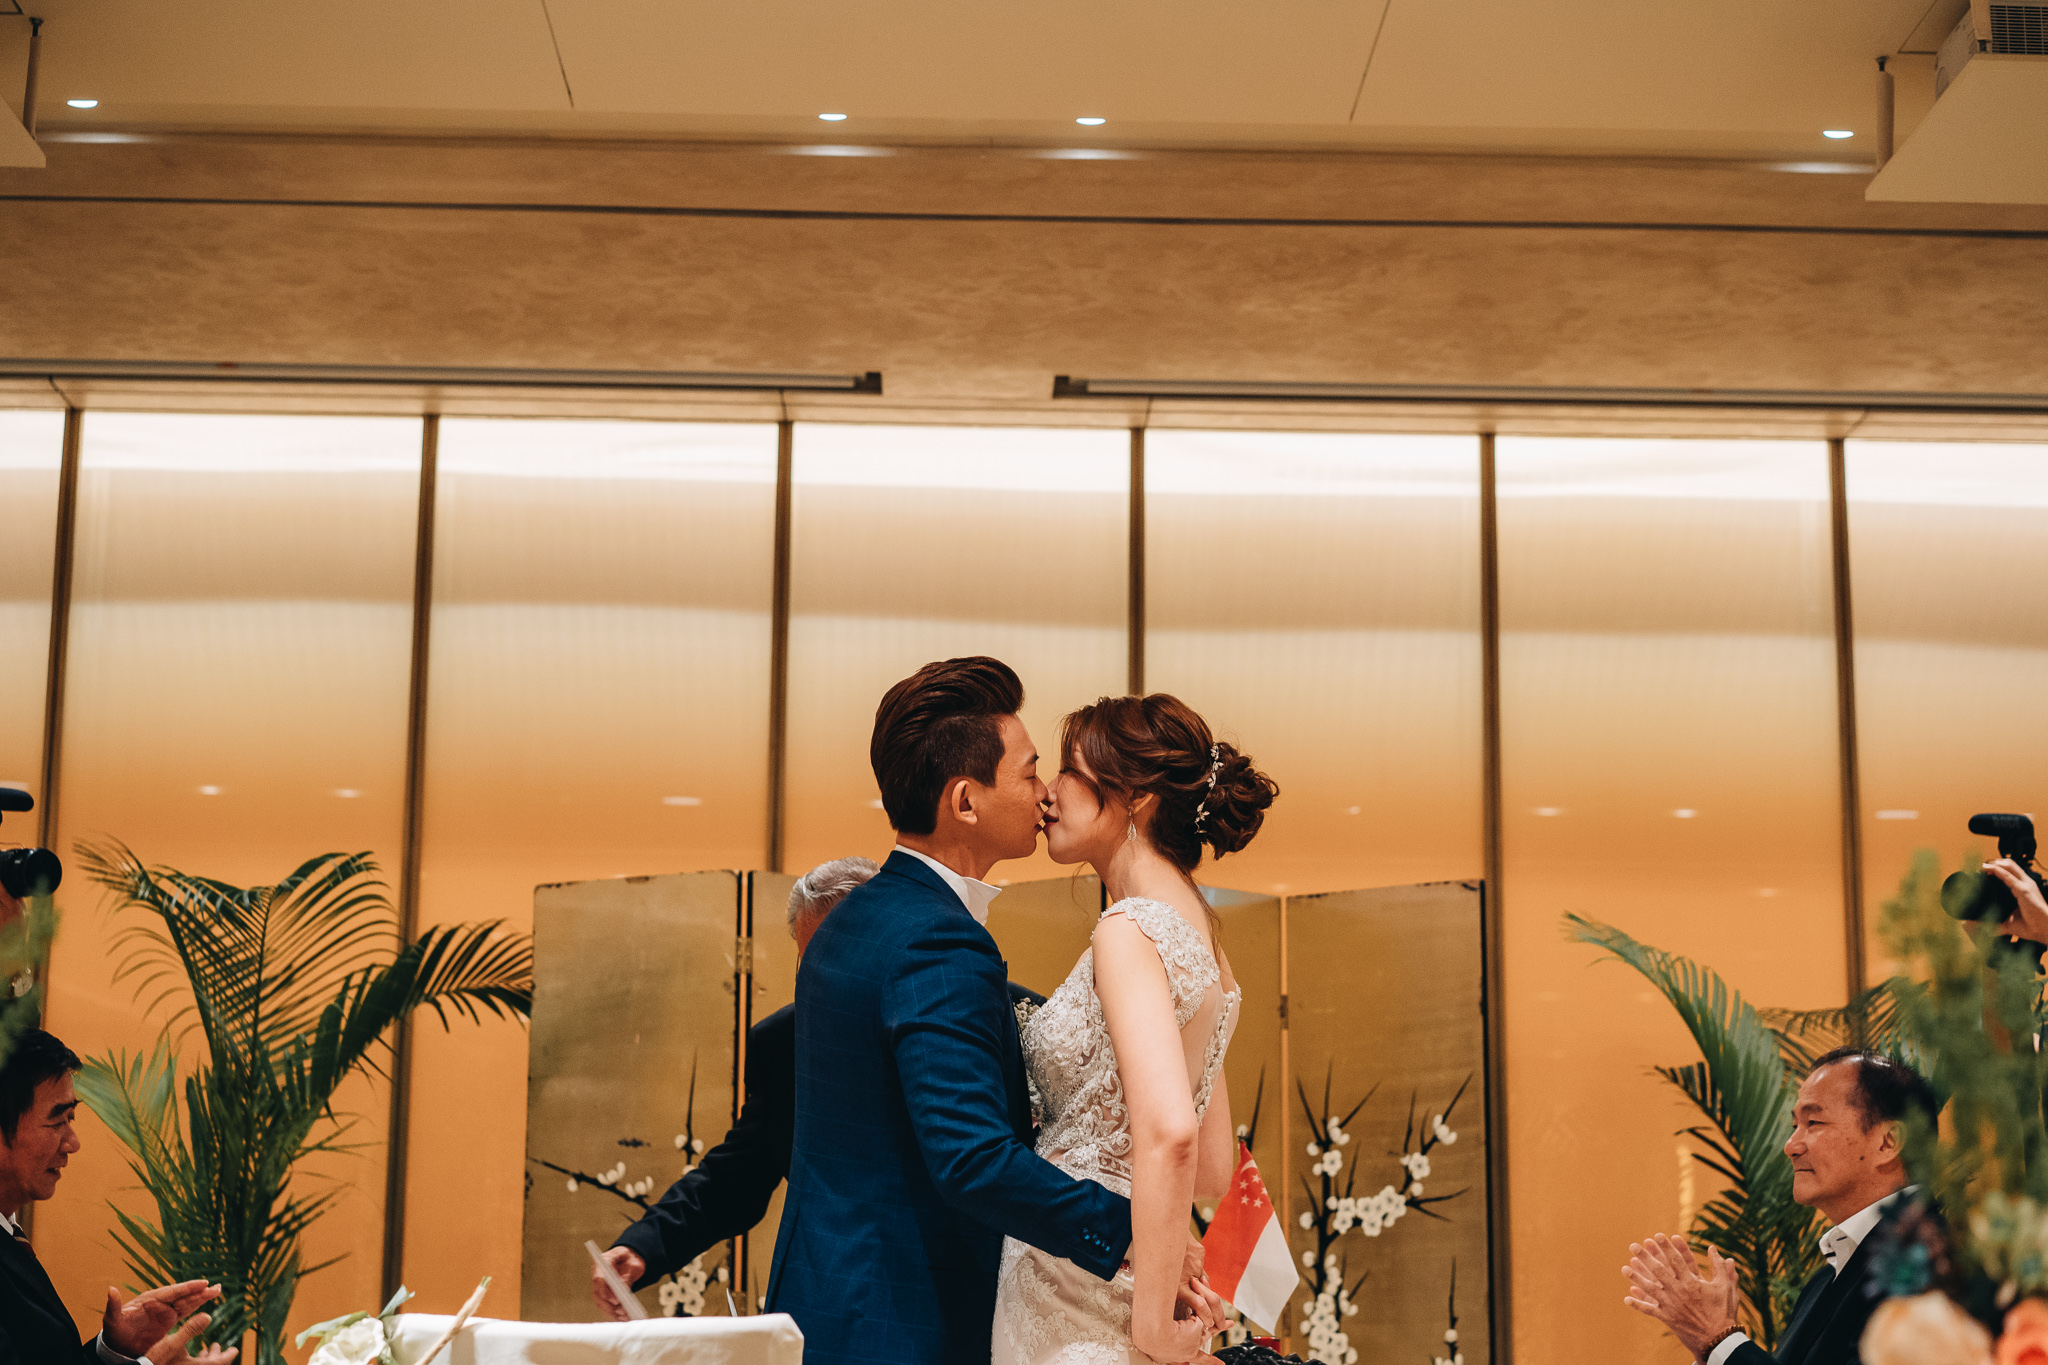 Cindy & Kevin Wedding Day Highlights (resized for sharing) - 159.jpg